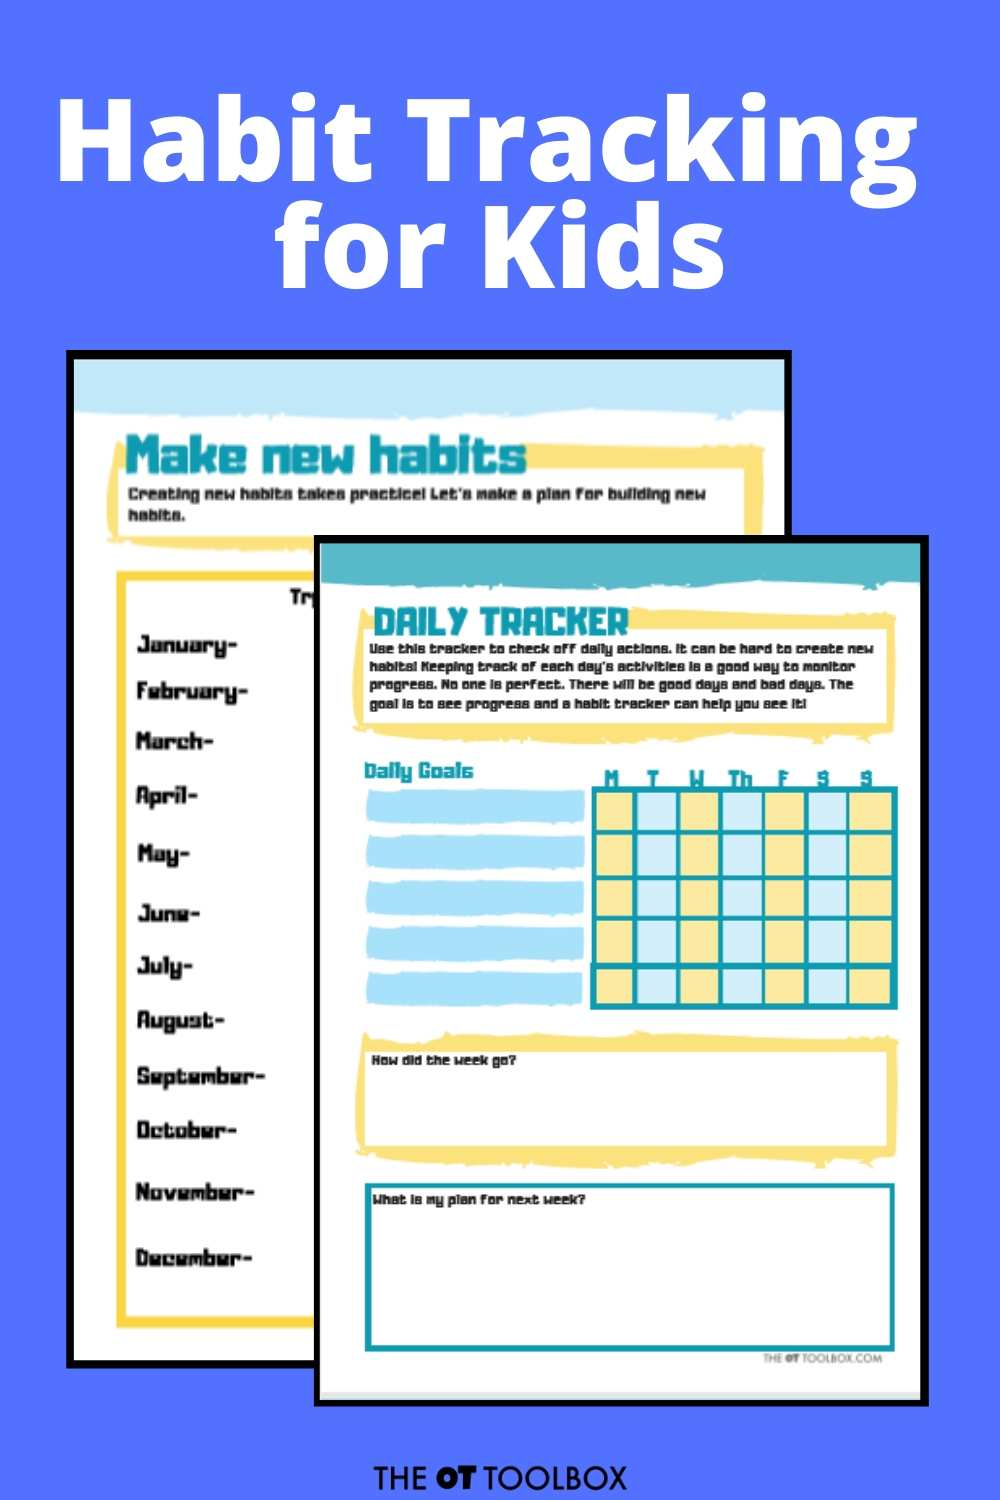 Kids can establish healthy habits with these strategies.